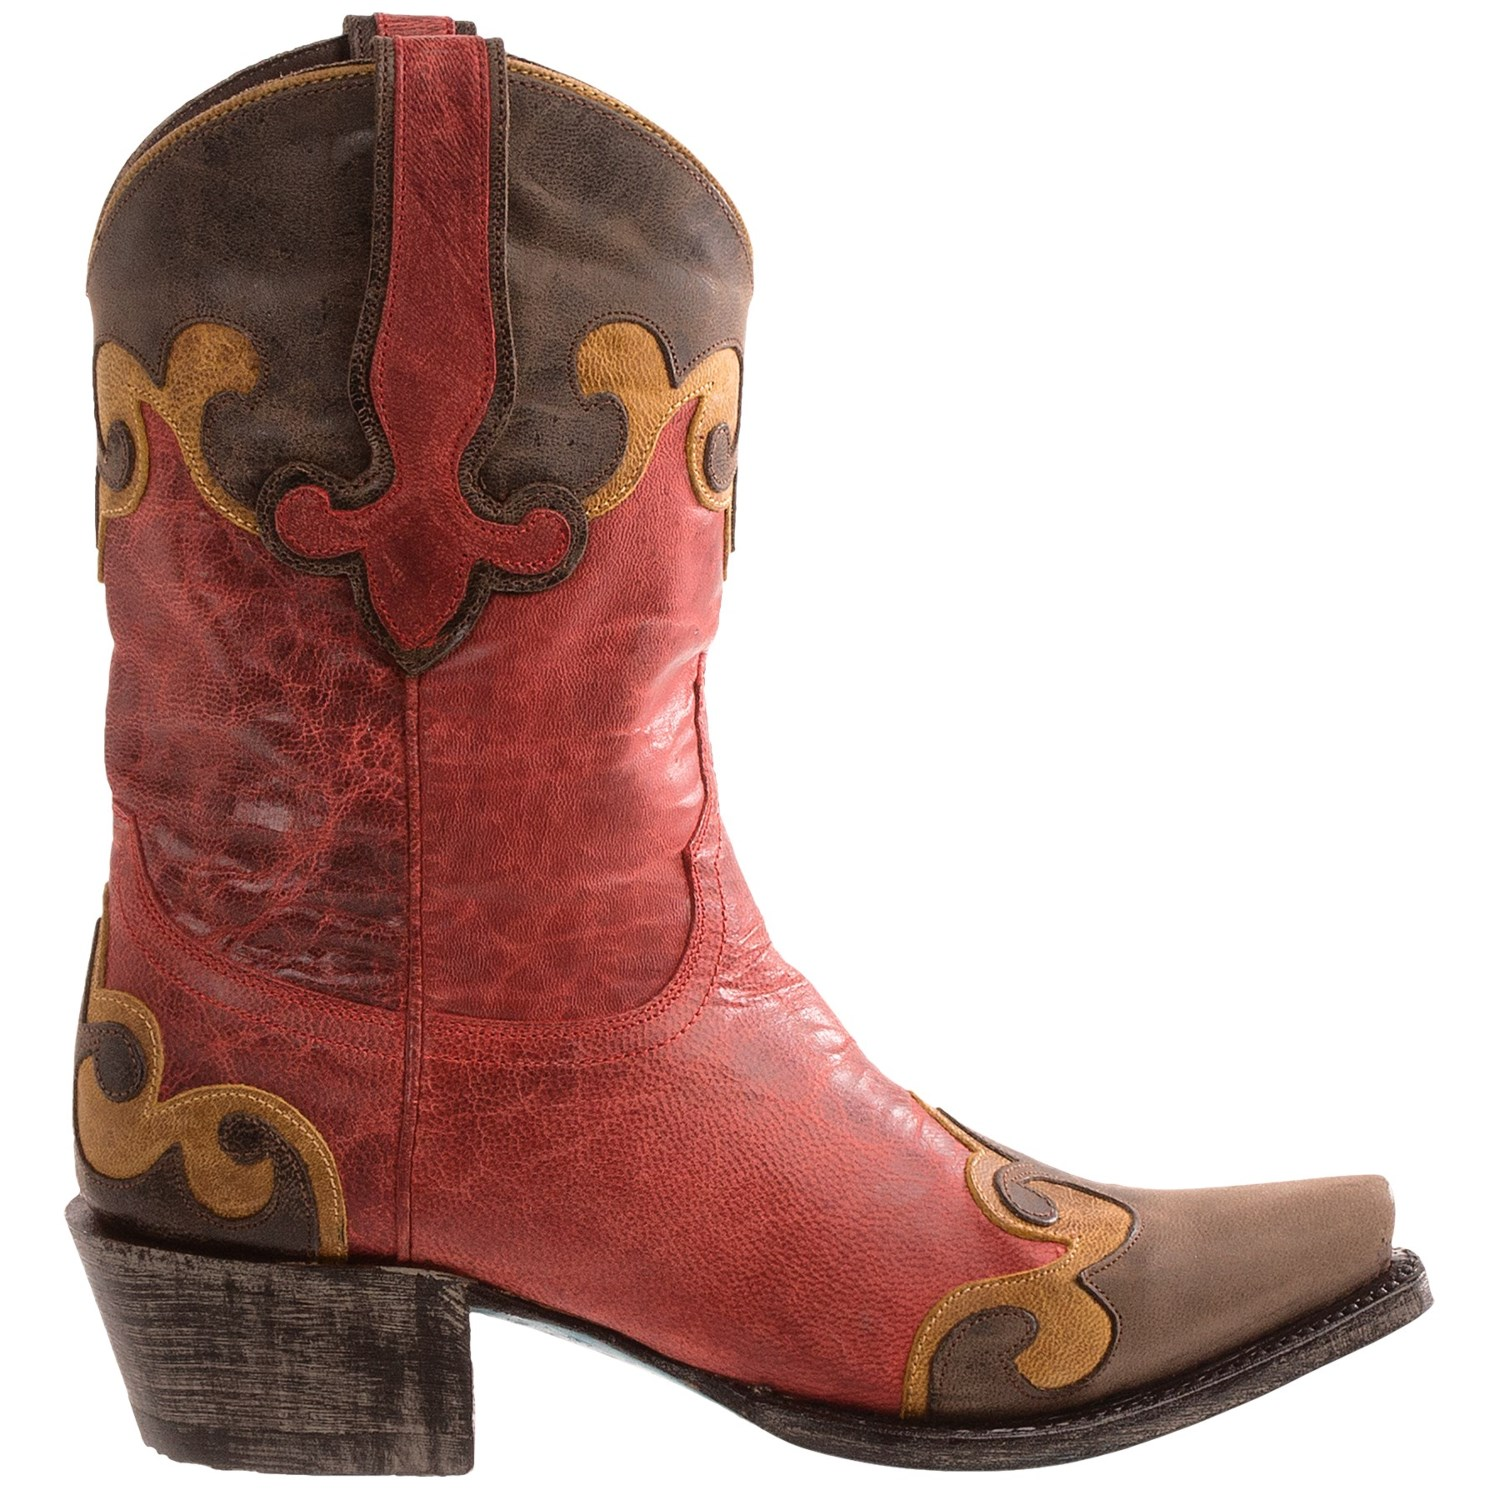 Lane Boots Dakota Cowboy Boots (For Women) - Save 59%